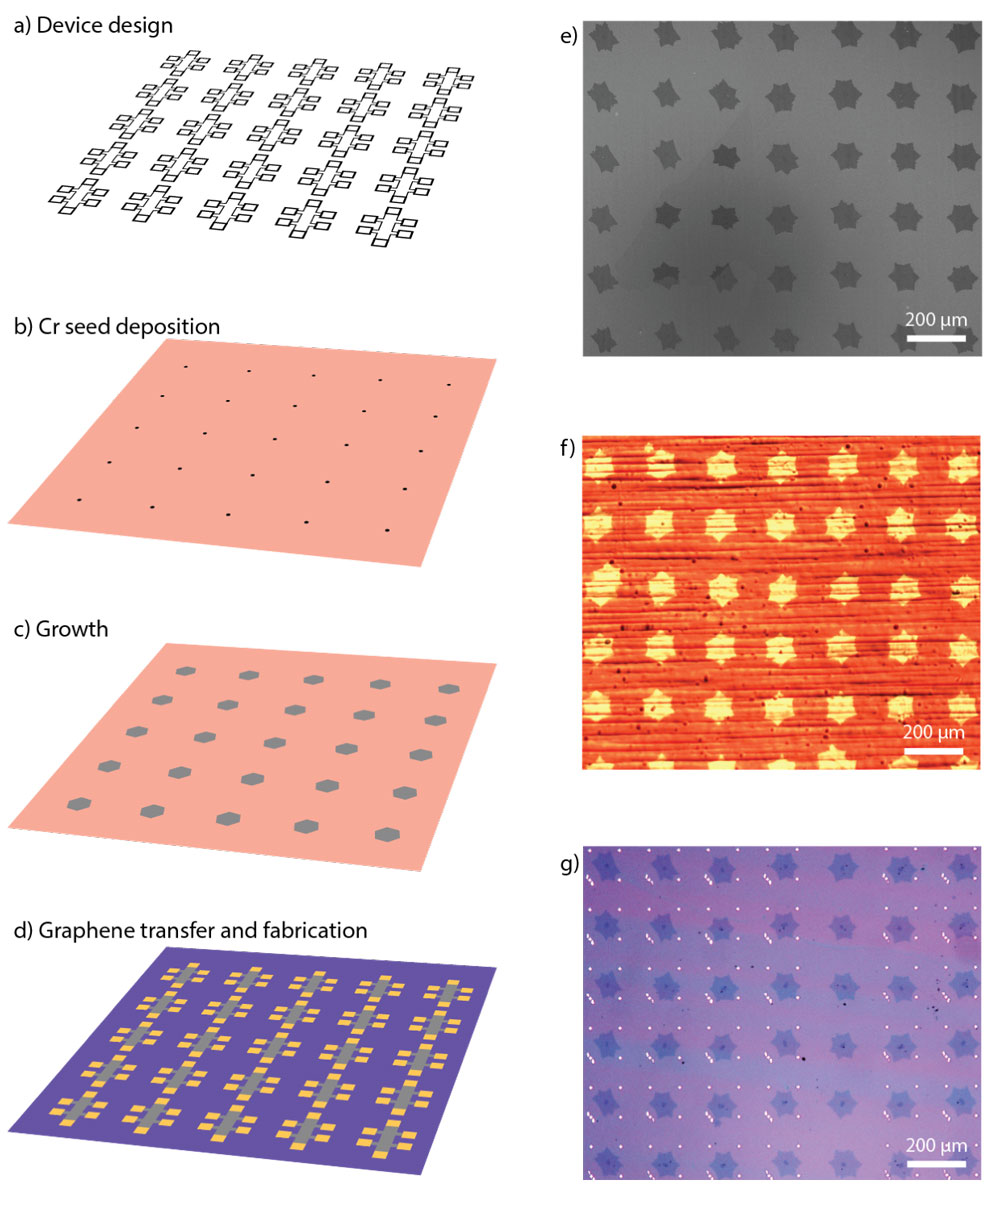 Fig. 1. (a)–(d) Proposed process flow for deterministic growth of single-crystal graphene. (e) SEM image of an array of graphene single-crystals. (f) Optical image of a graphene array on oxidised Cu foil. (g) Optical image of single-crystal array transferred onSi/SiO2 substrate with alignment markers. In figures (e)–(g) the array periodicity is 200 μm and crystal size is ~100 μm Miseikis et al, 2D Mater 4 2017